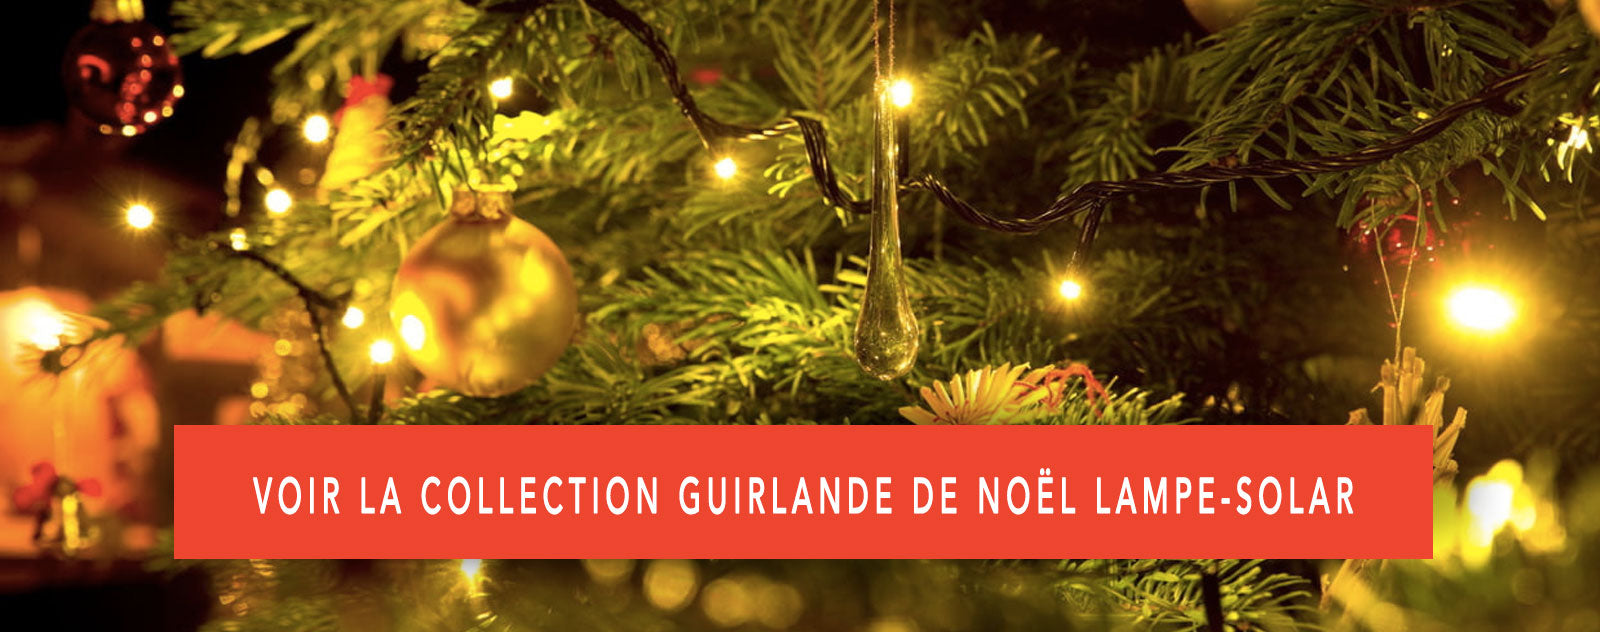 collection guirlande solaire lampe-solar